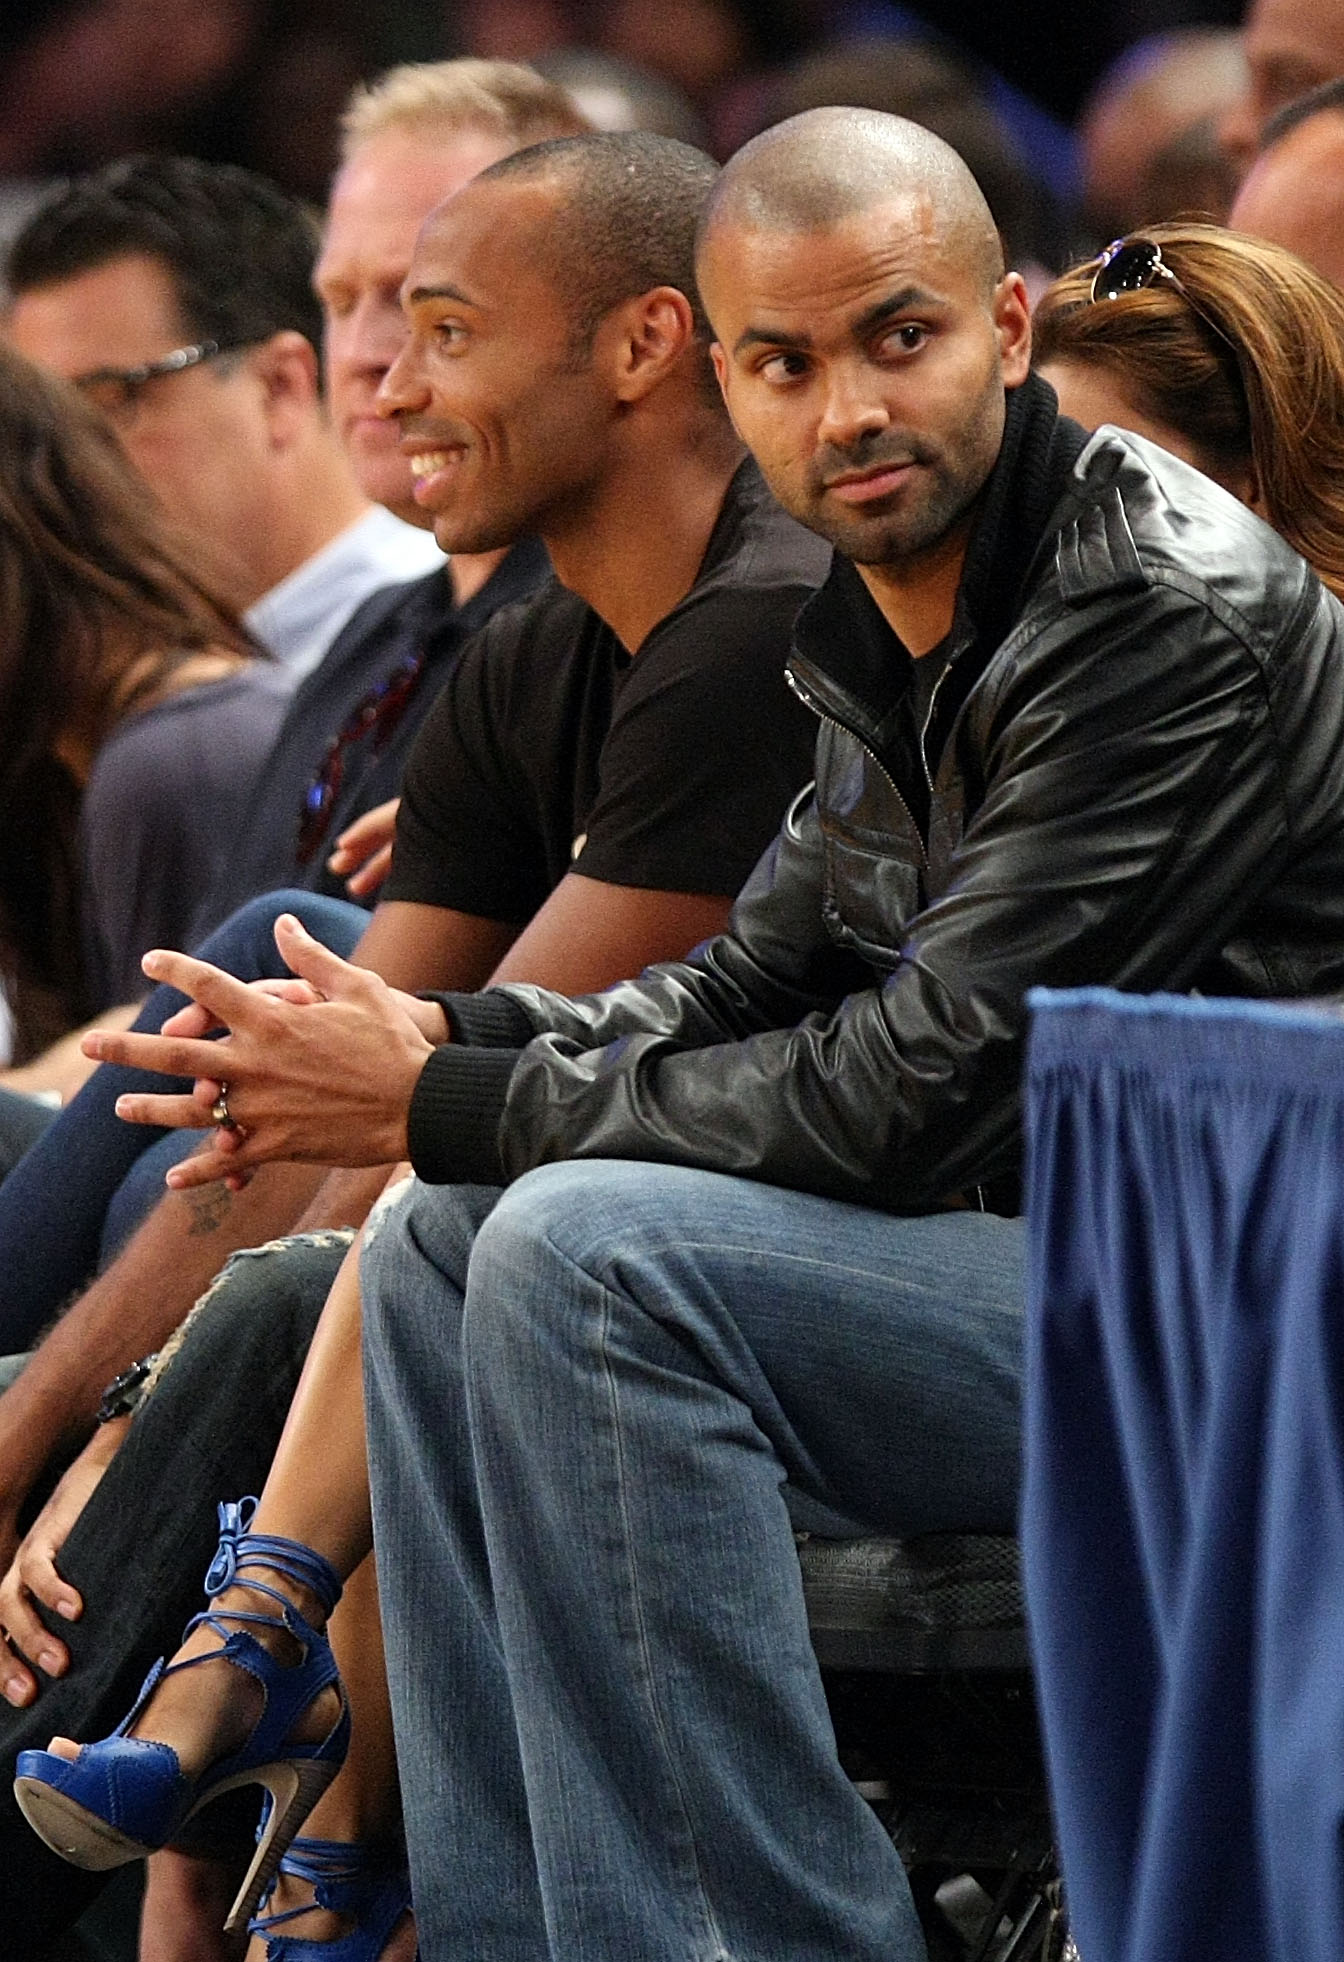 NEW YORK - AUGUST 15:  Thierry Henry and Tony Parker watch on during the United States and France exhibition game as part of the World Basketball Festival at Madison Square Garden on August 15, 2010 in New York City.  (Photo by Nick Laham/Getty Images)